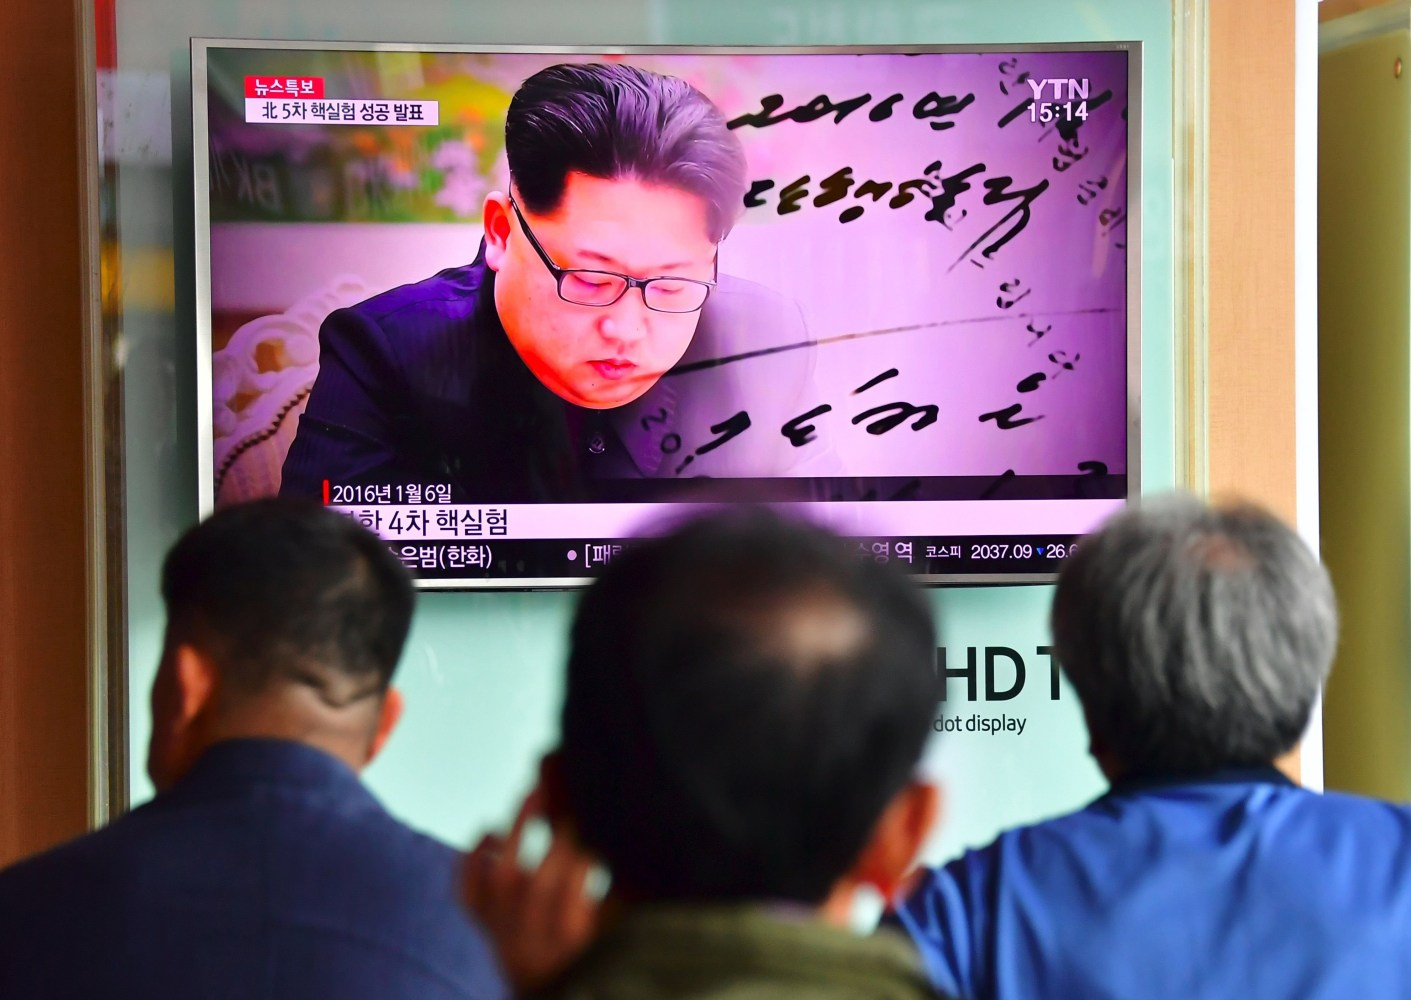 North Korea Claims Detonation of a Nuclear Warhead